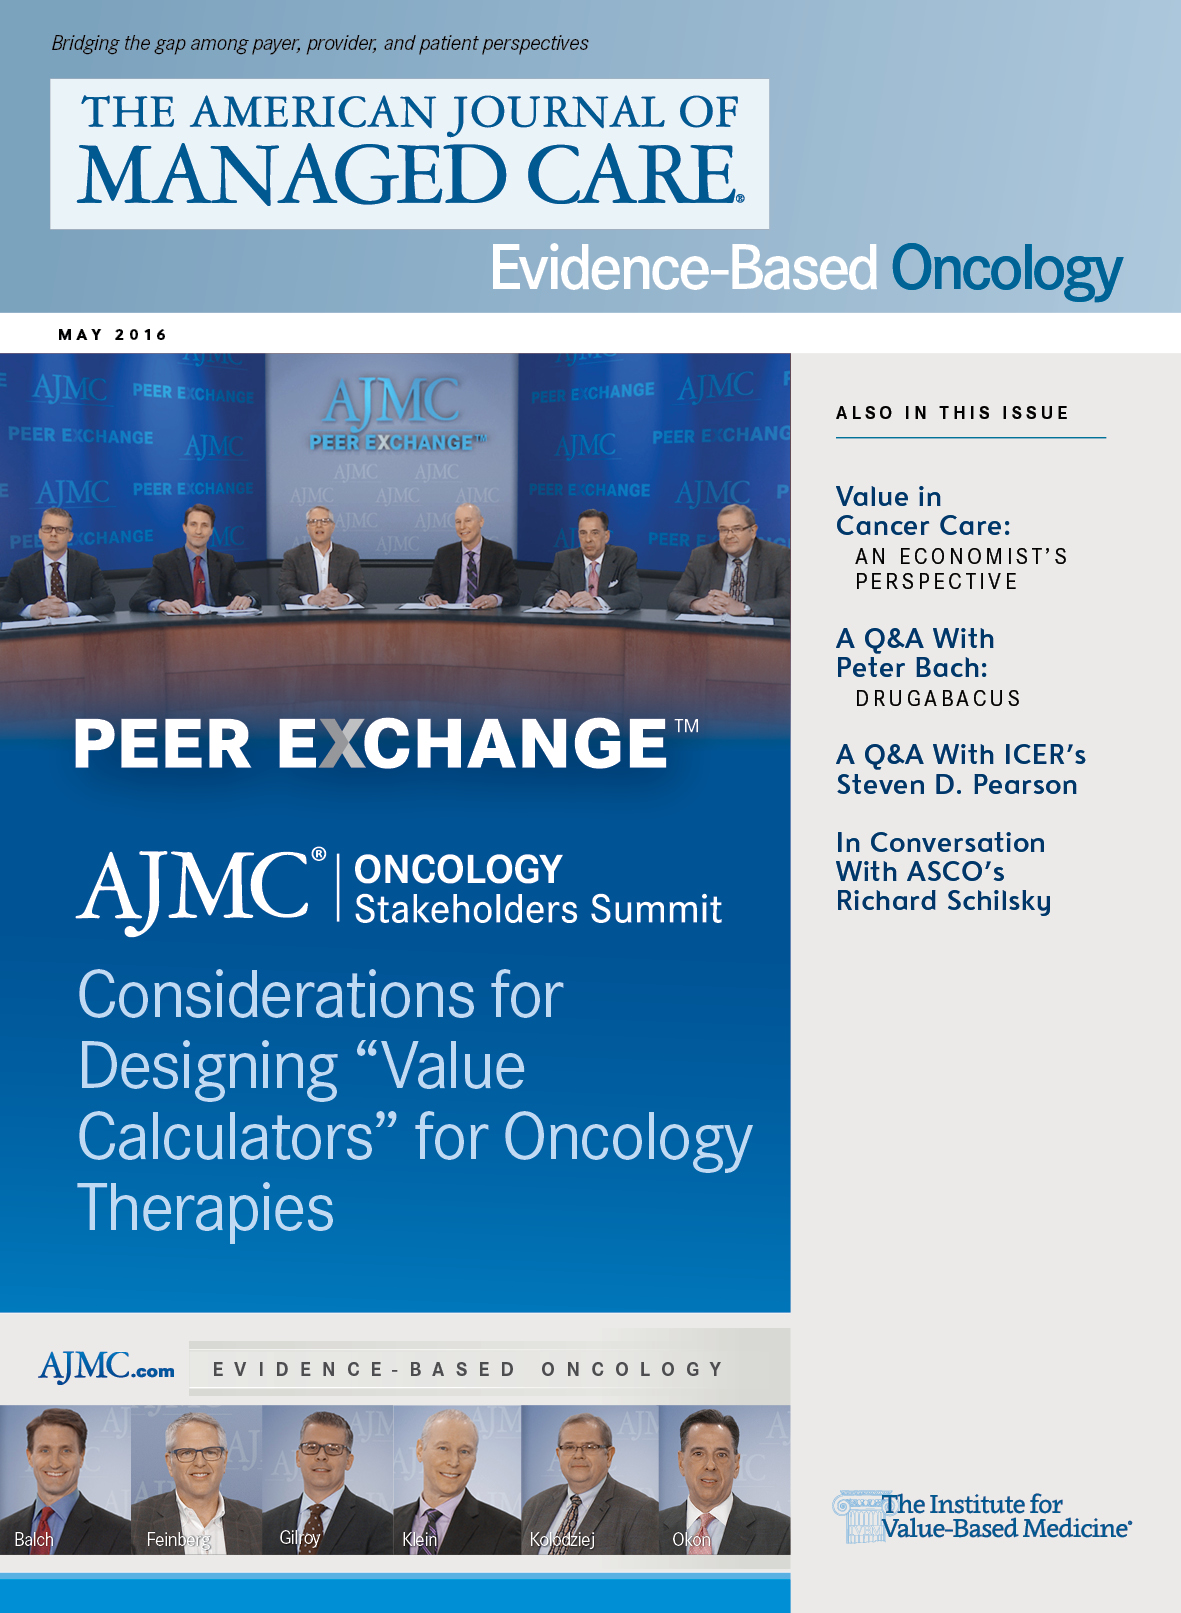 Peer Exchange: Spring 2016 Oncology Stakeholders Summit